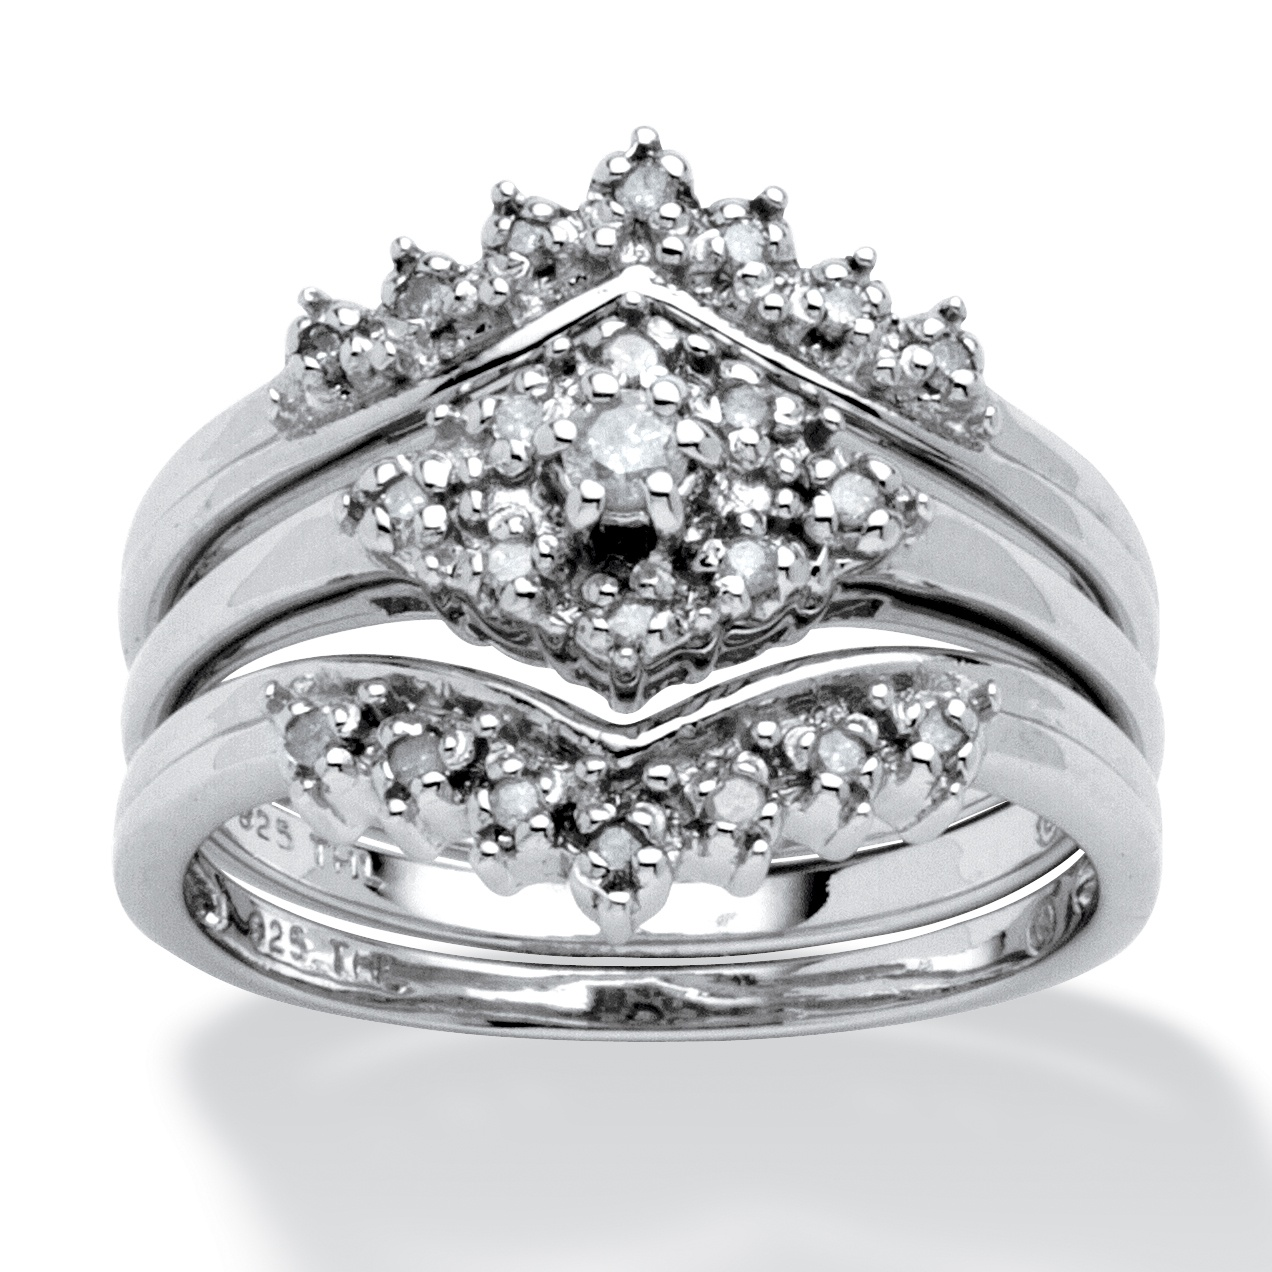 15 TCW Round Diamond 3Piece Bridal Set in Platinum over Sterling Silver at PalmBeach Jewelry